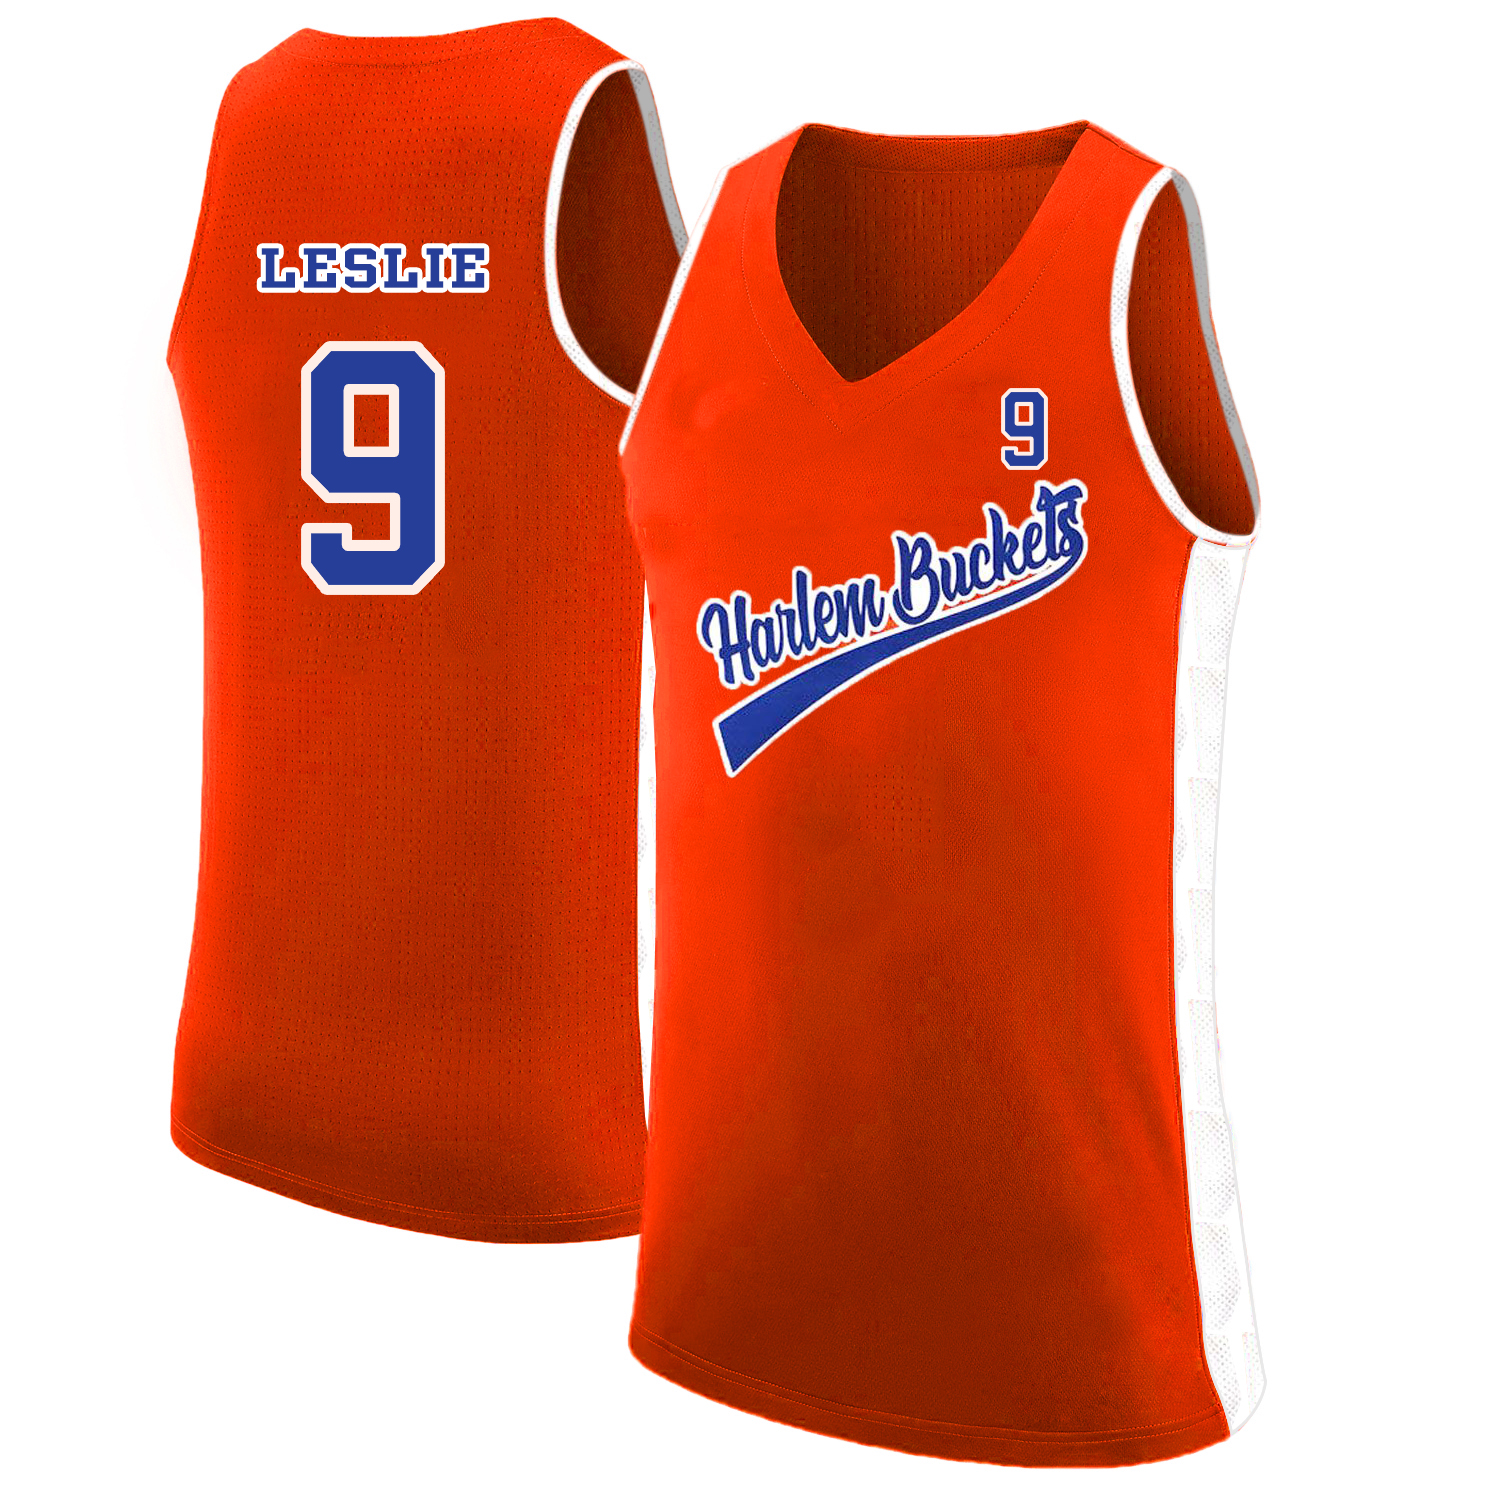 Harlem Buckets 9 Lisa Leslie Orange Uncle Drew Basketball Jersey